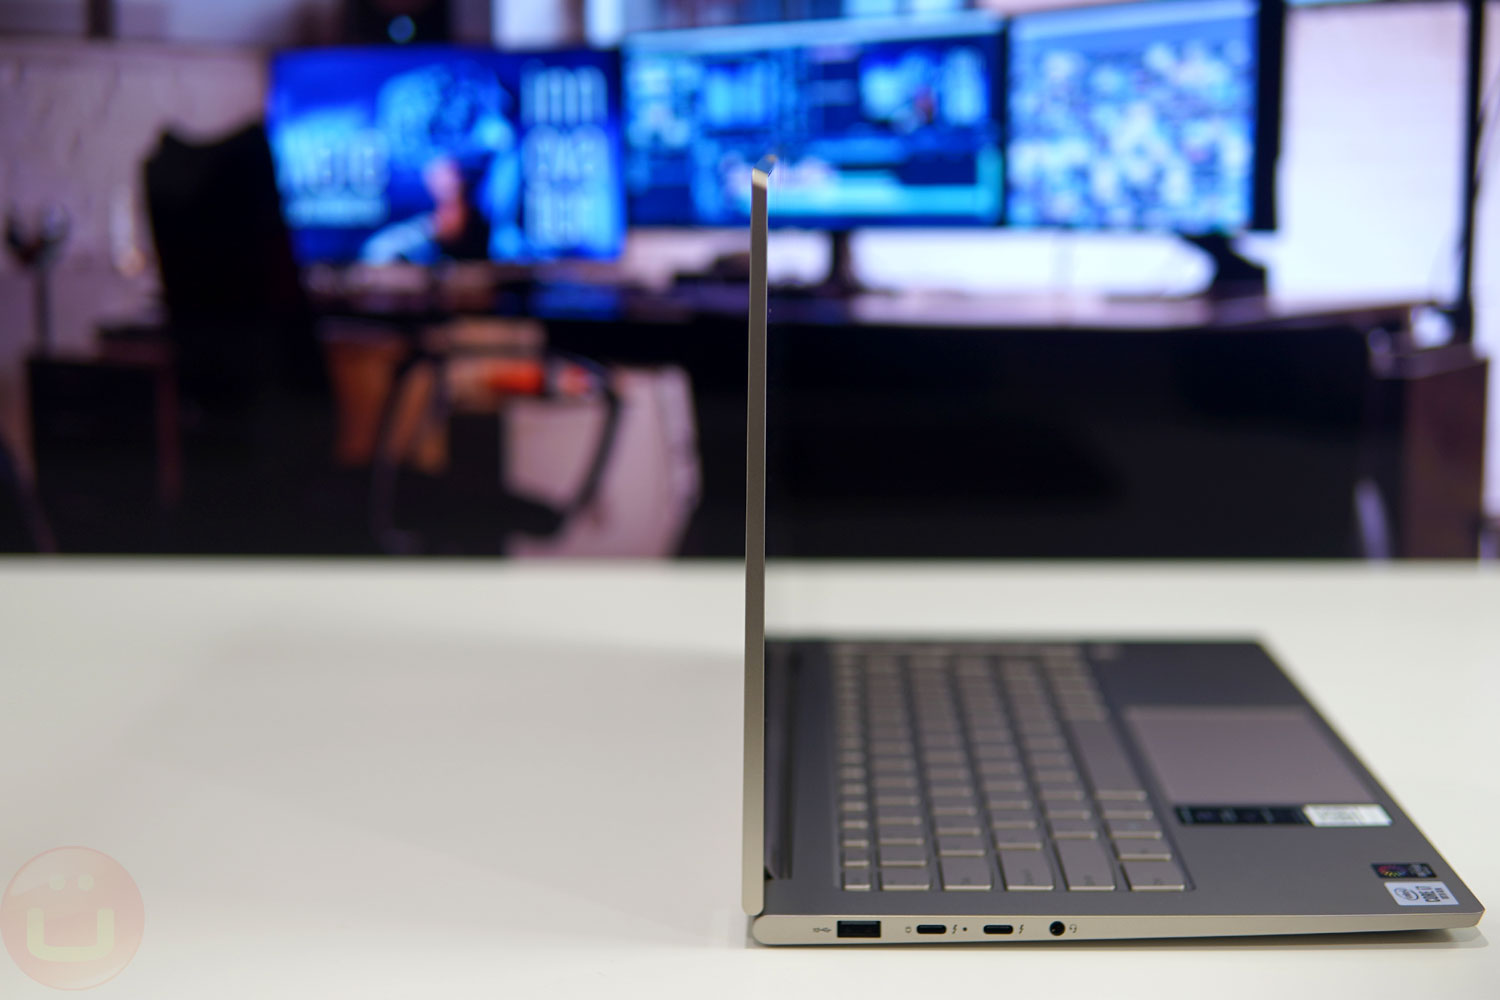 Lenovo Yoga C940 Review